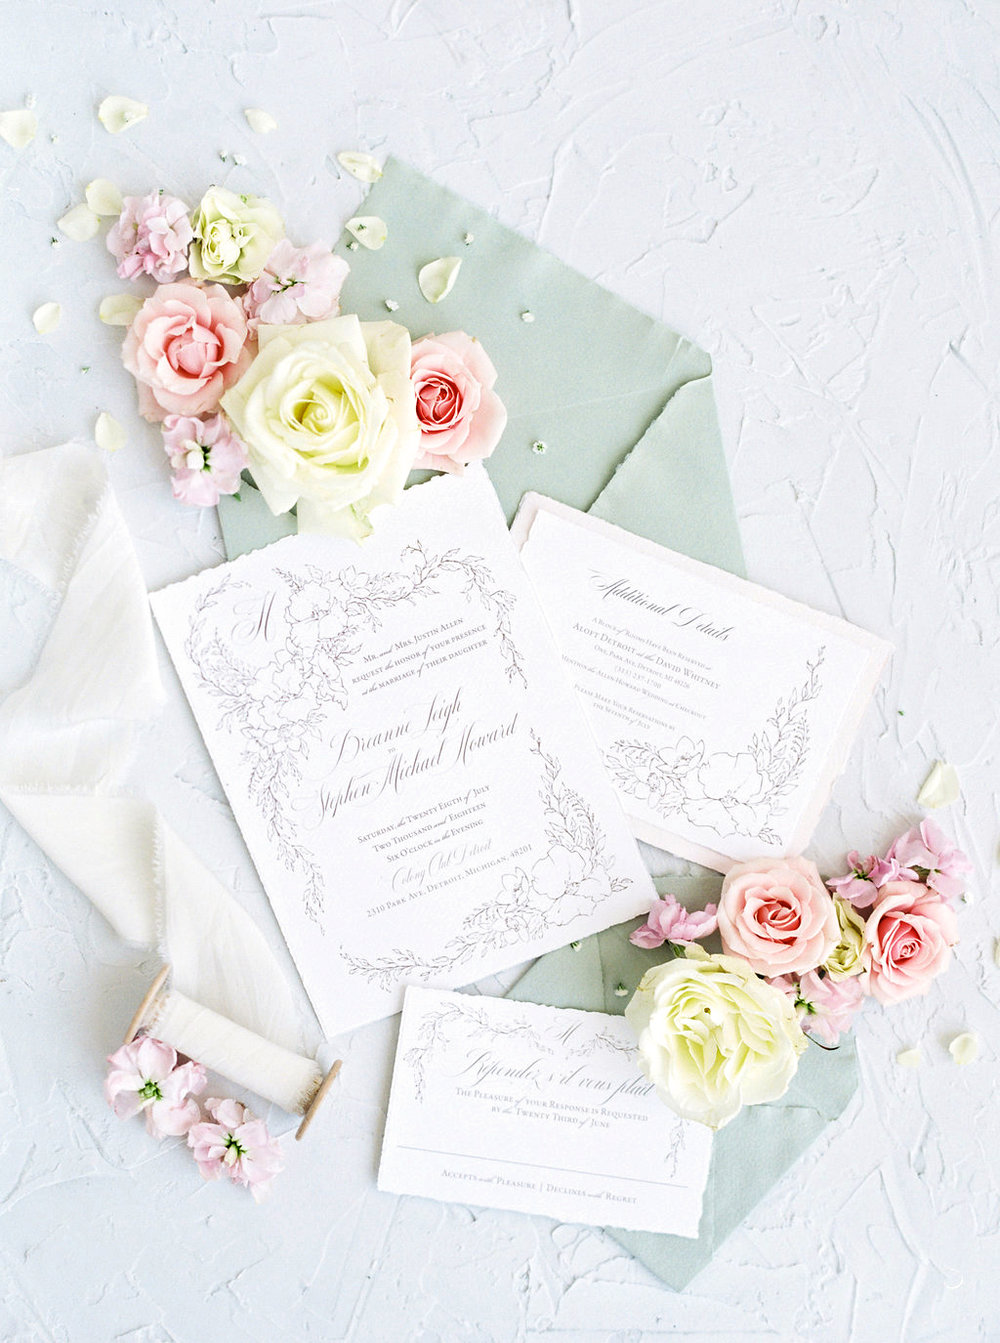 Handmade paper wedding invitations with floral illustration and fine art details.  Italian paper featuring a custom monogram in the corner of a hand illustrated wedding stationery suite.  Blushed Design: Wedding Invitations and Fine Art Portraits